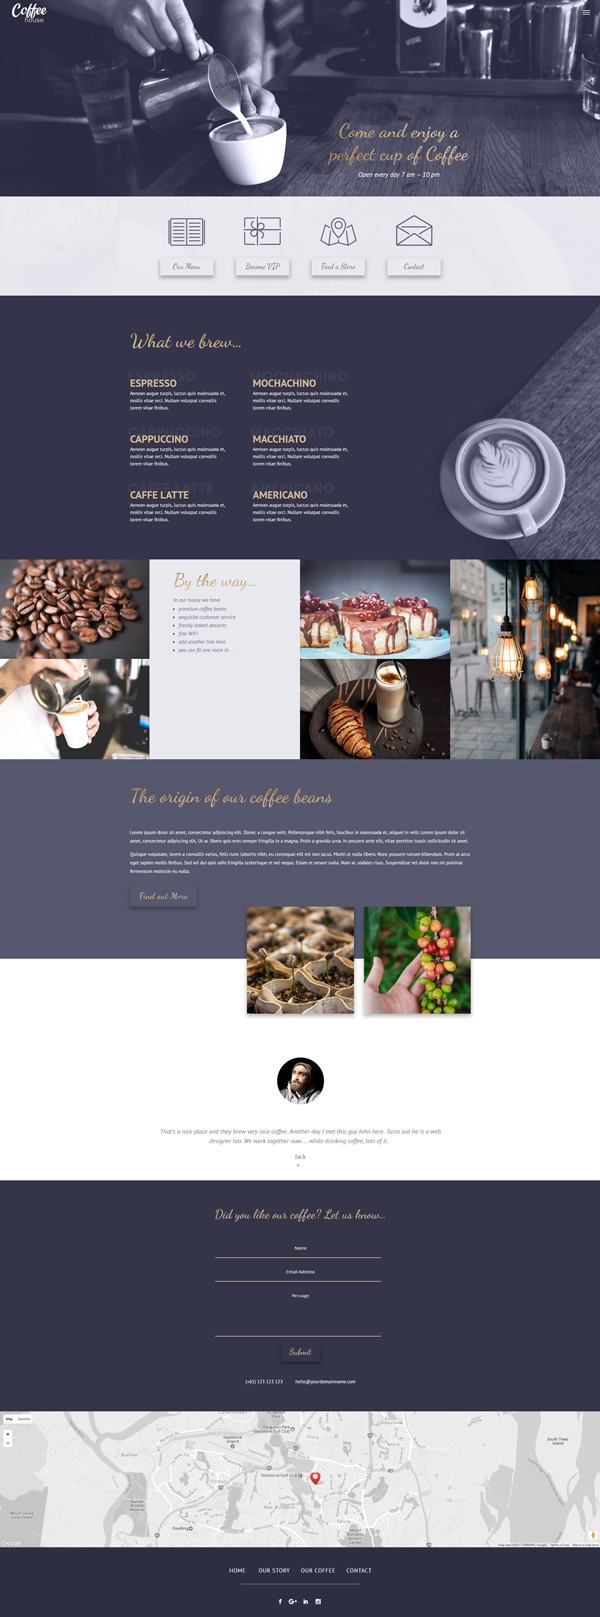 divi-coffee-house-layout-telecharger